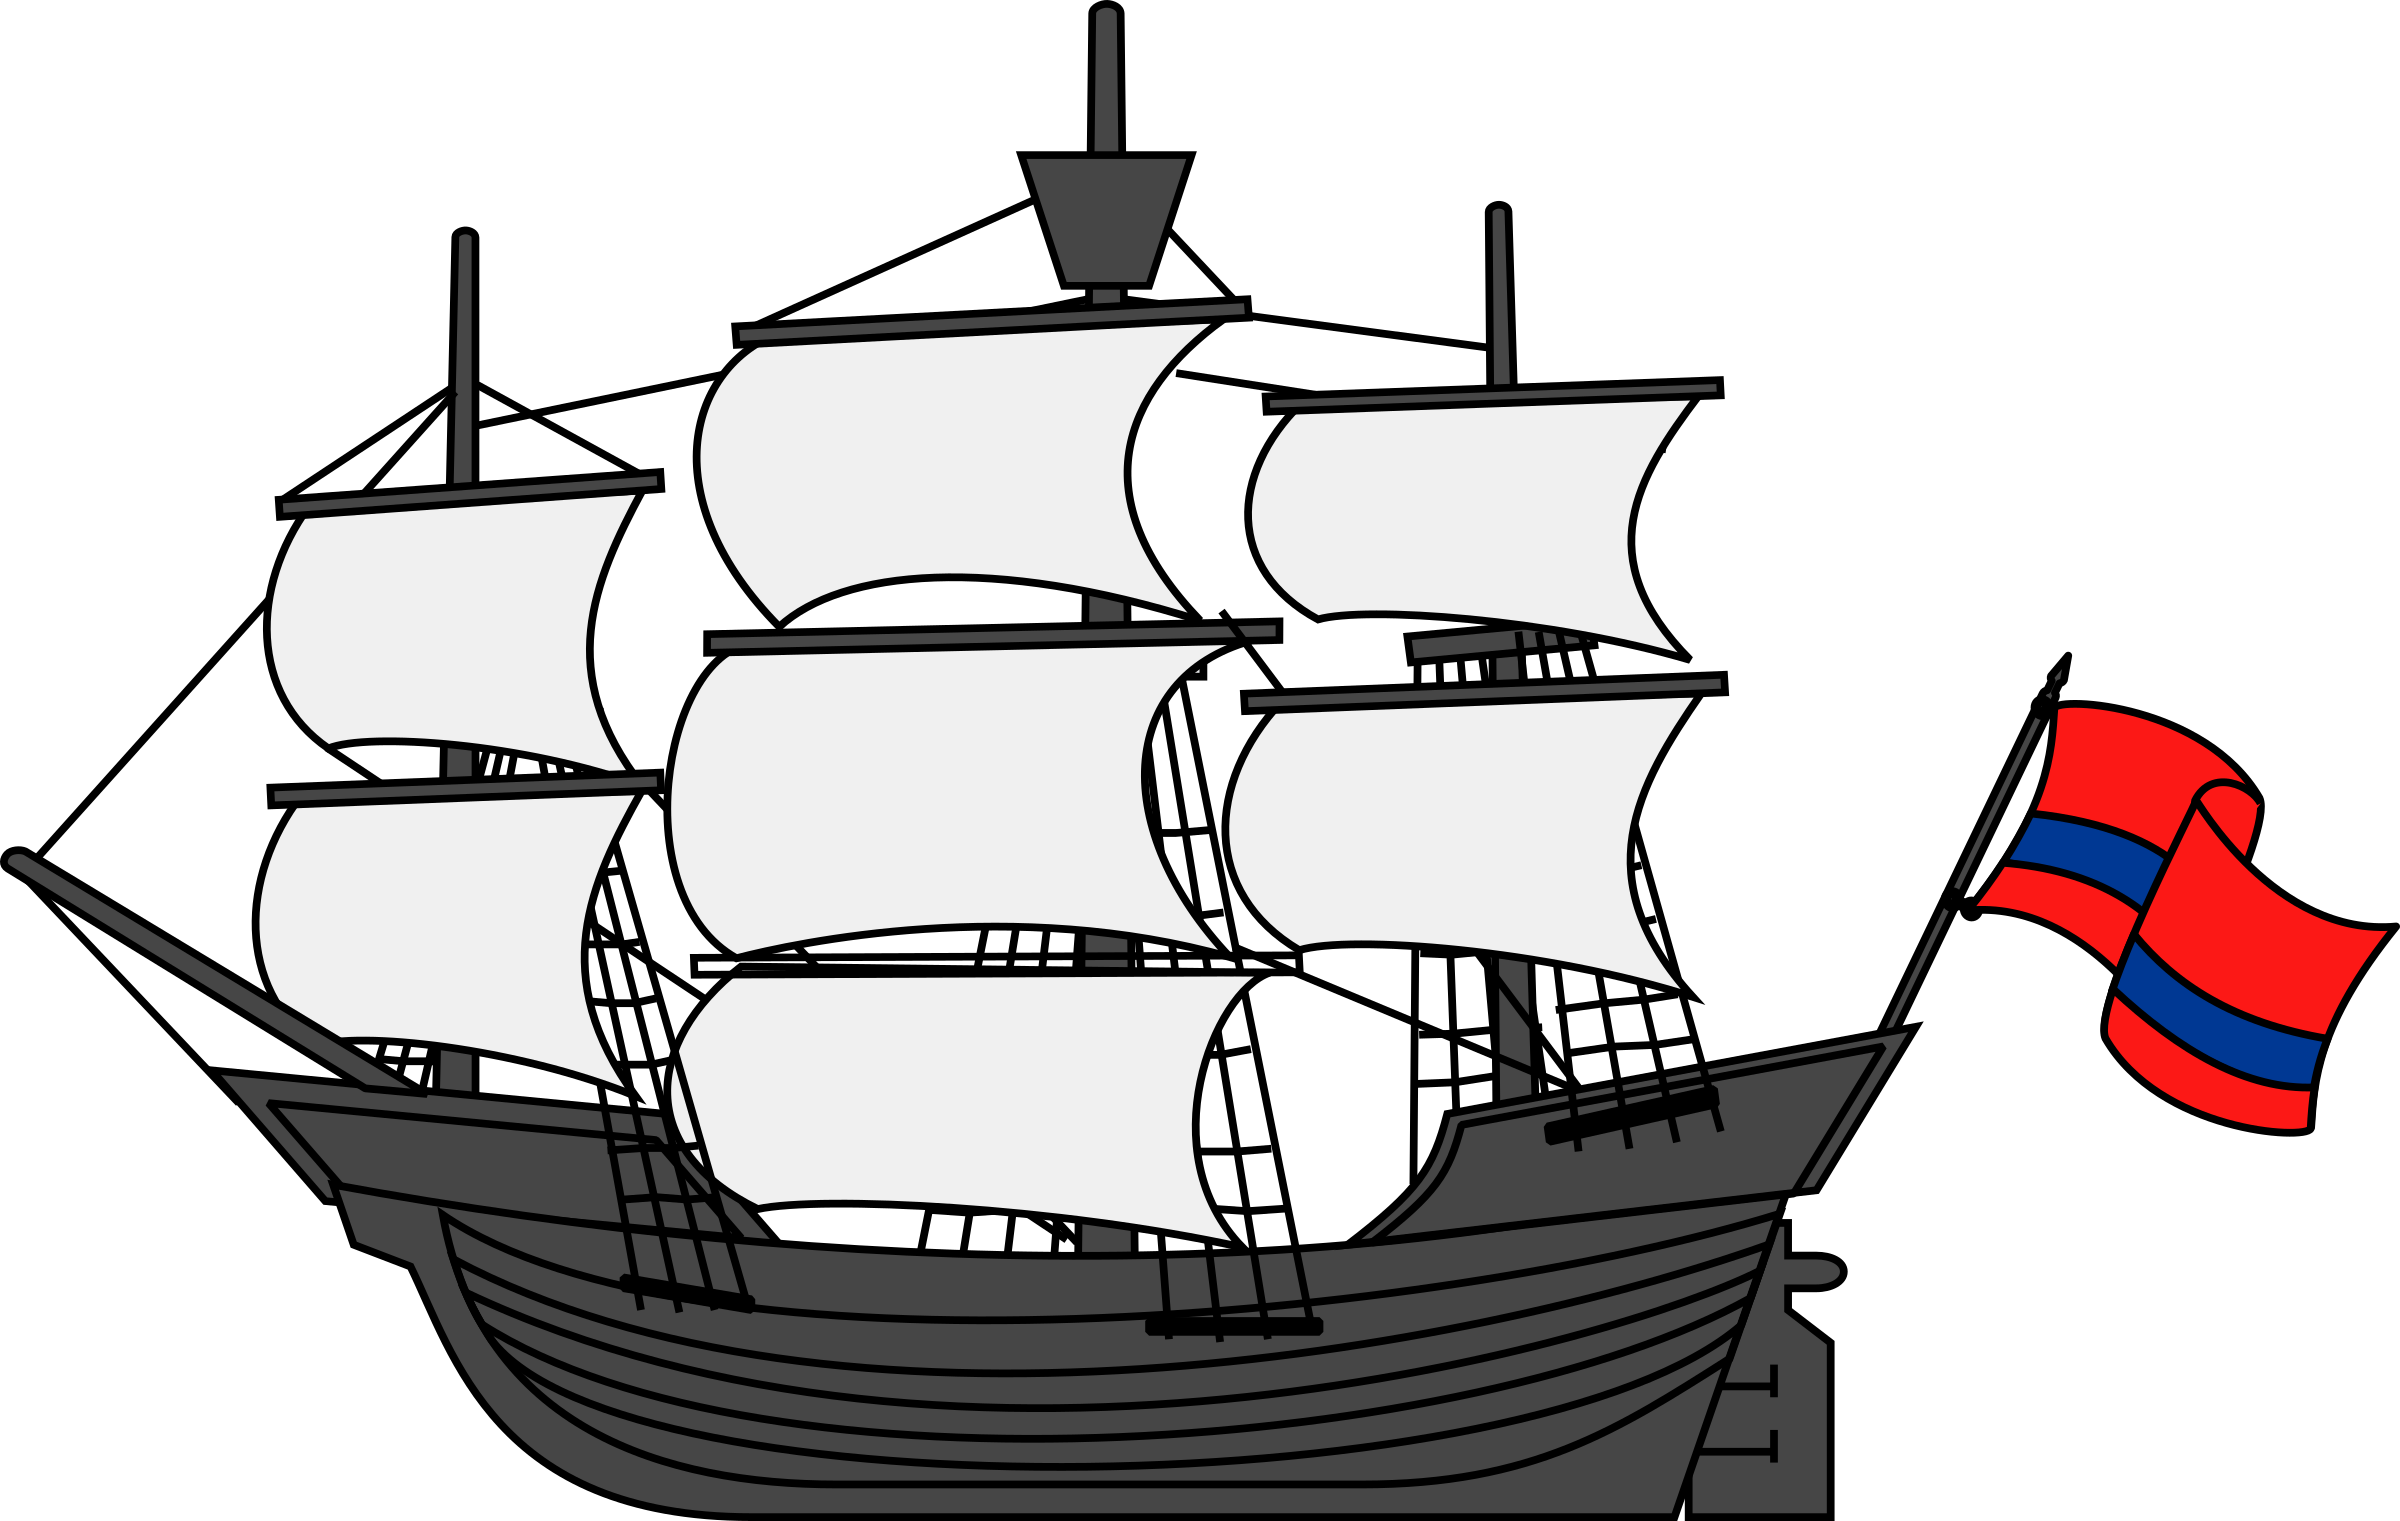 Sailing ship png. Icons free and downloads